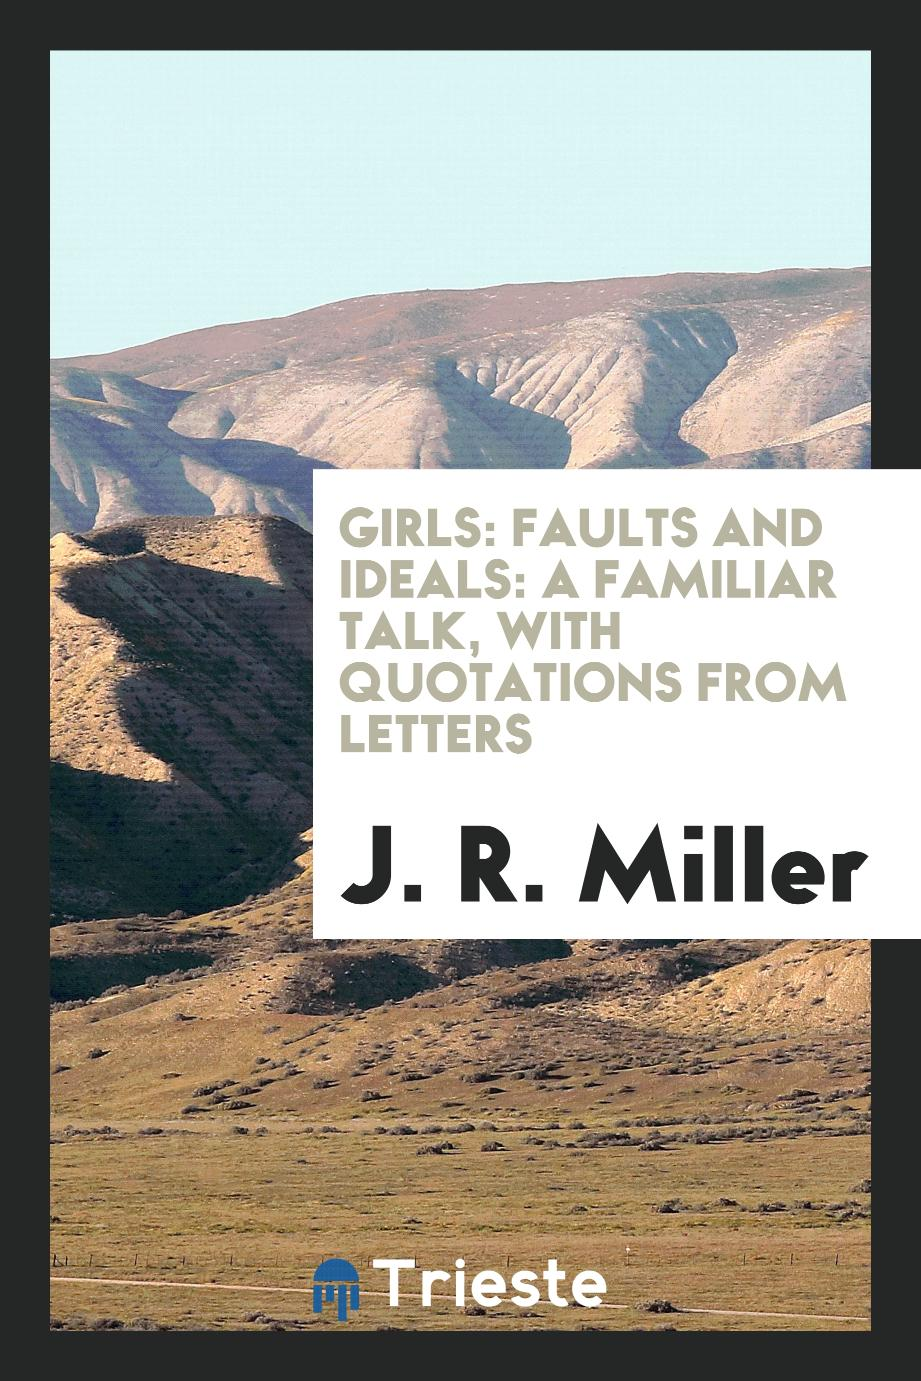 Girls: Faults and Ideals: A Familiar Talk, with Quotations from Letters